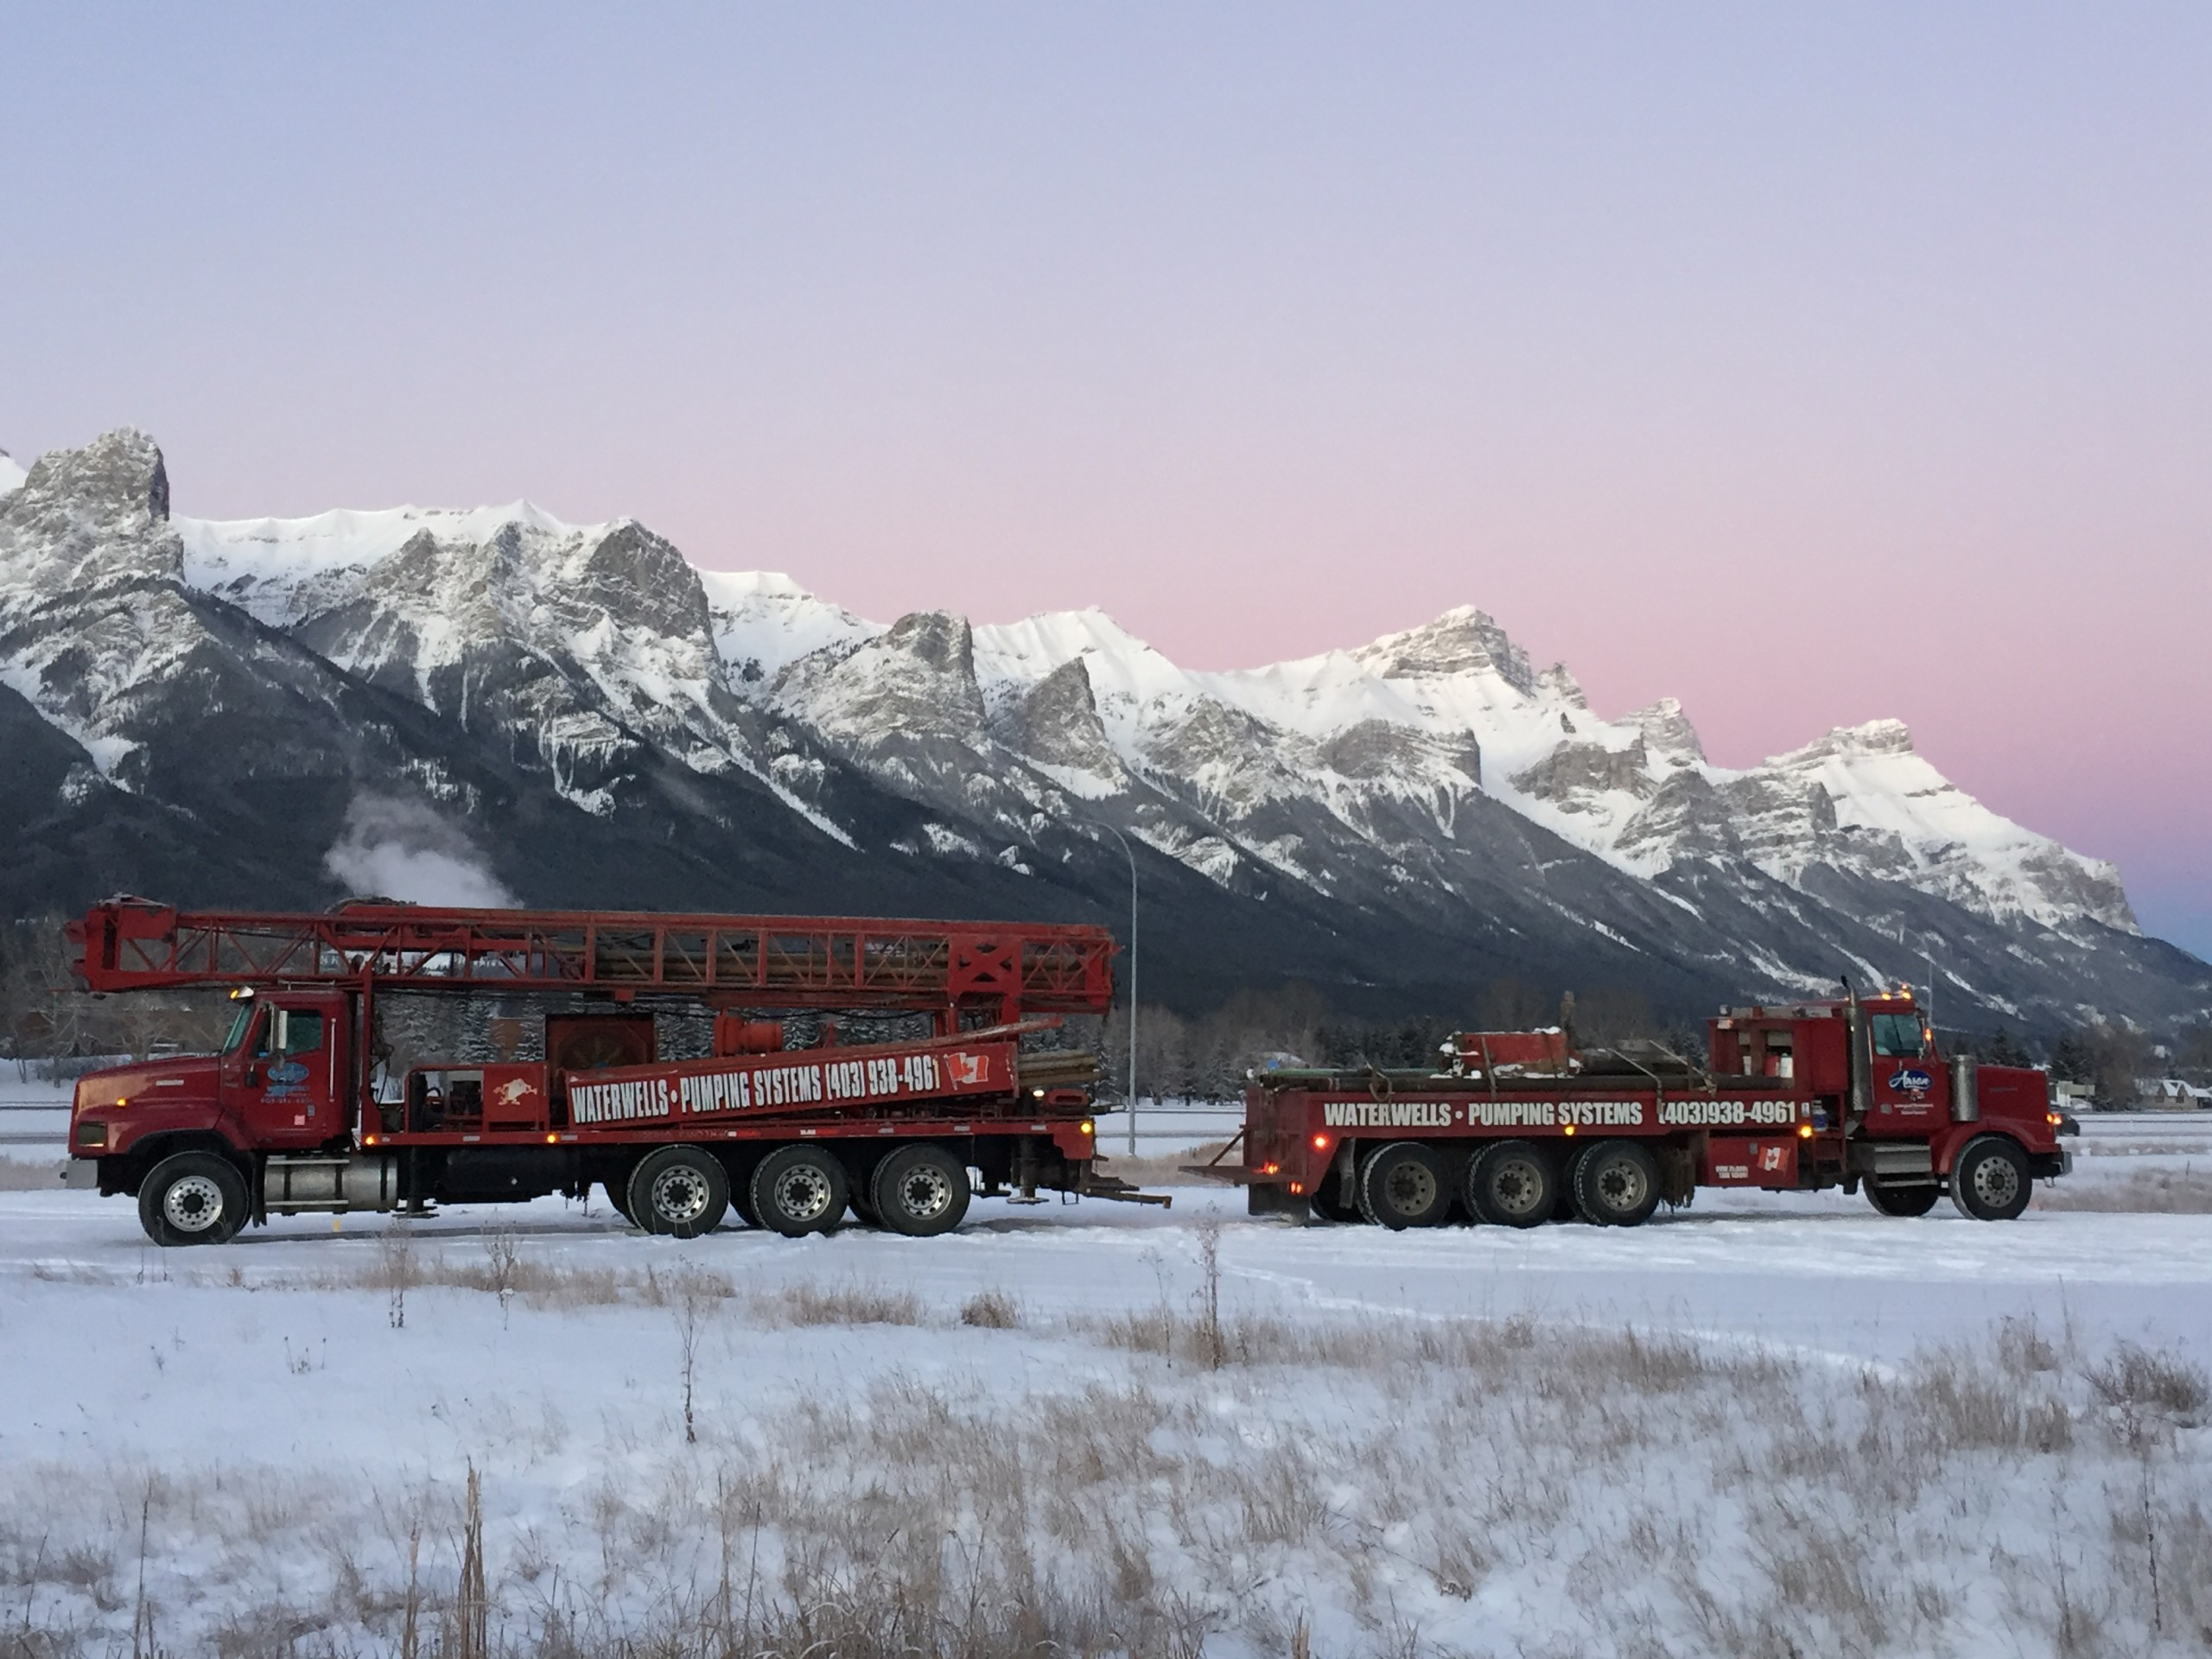 Drilling trucks in the mountains